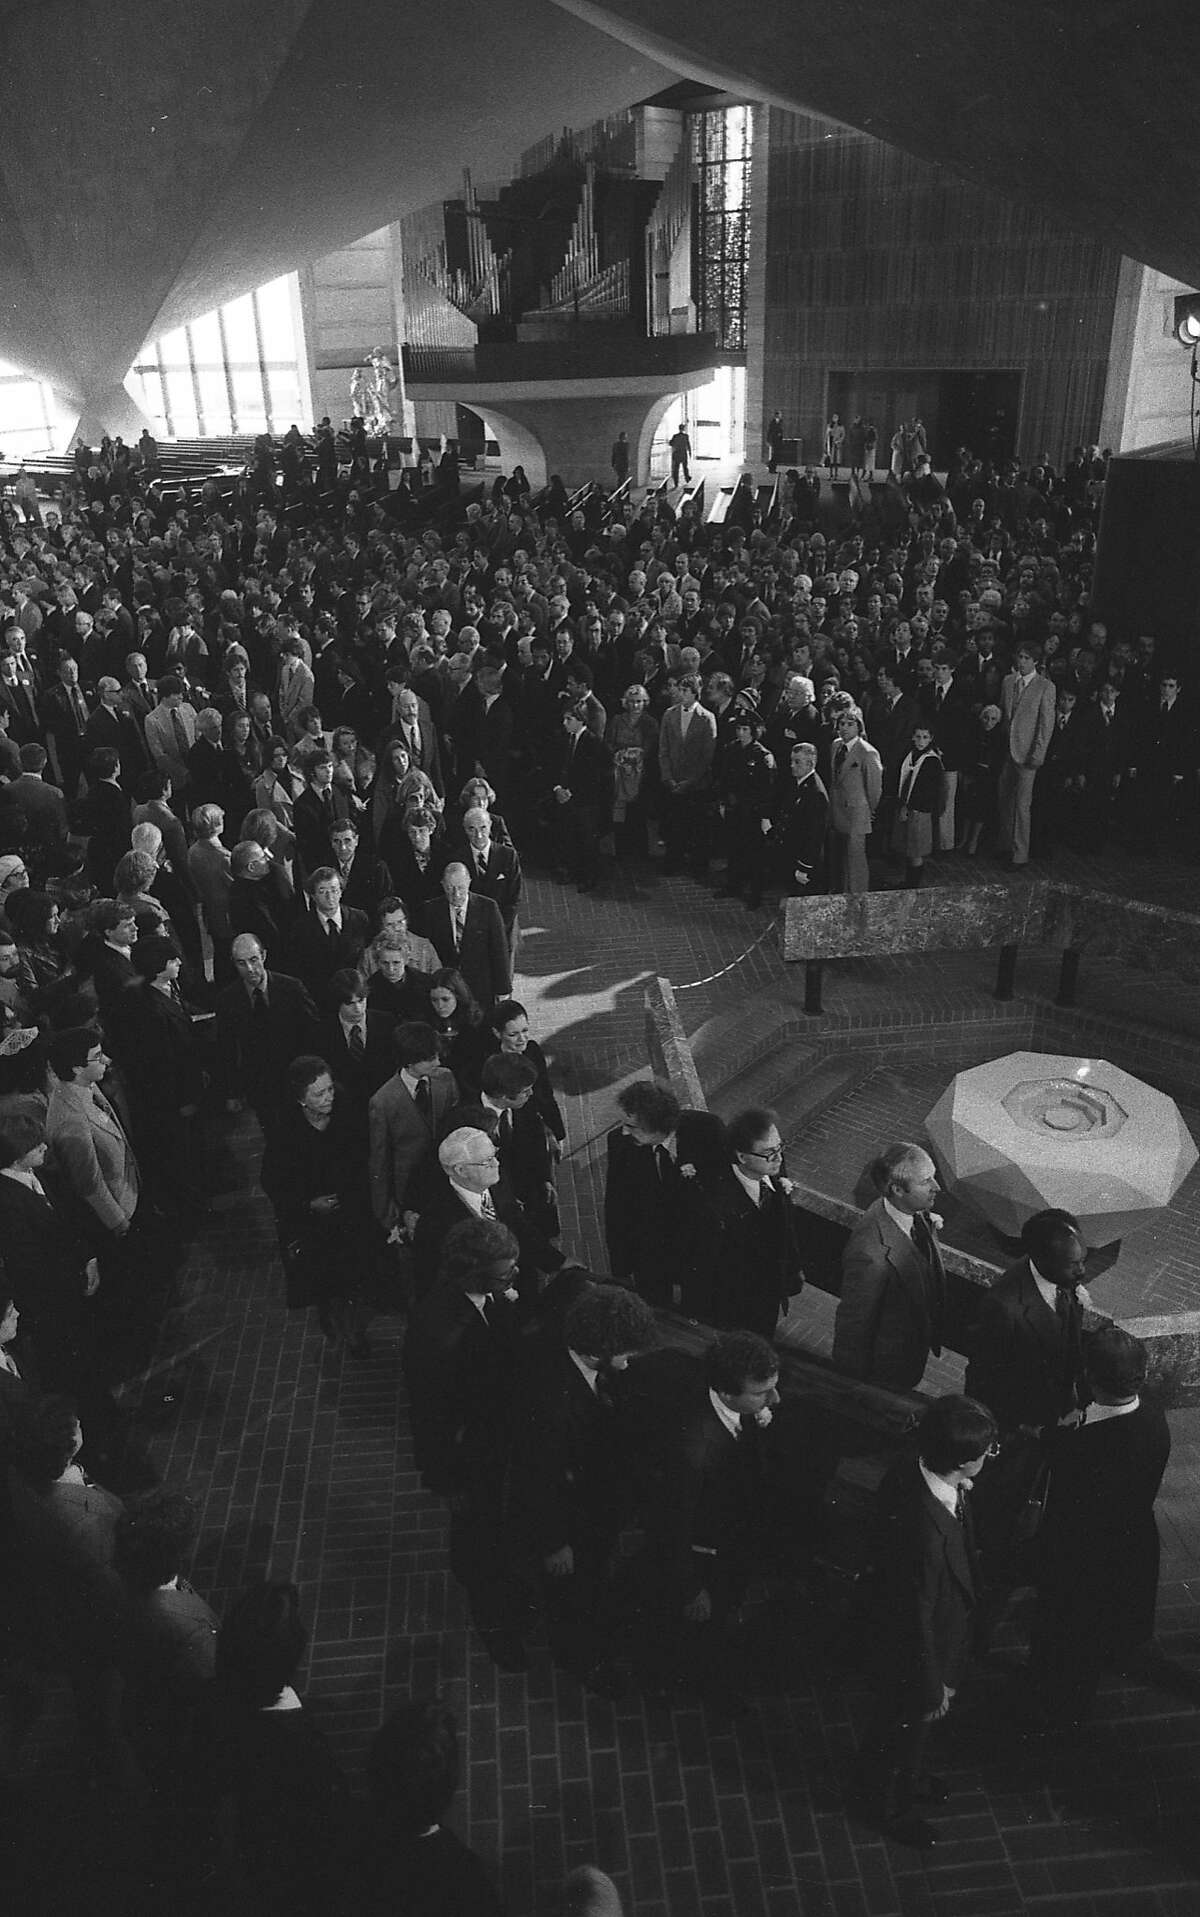 Moments that brought San Franciscans together Mourners came together in grief following the assassinations of Harvey Milk and George Moscone by Dan White on Nov. 27, 1978.  Above: Mayor George Moscone's casket carried out of the church following his funeral on Nov. 30, 1978.